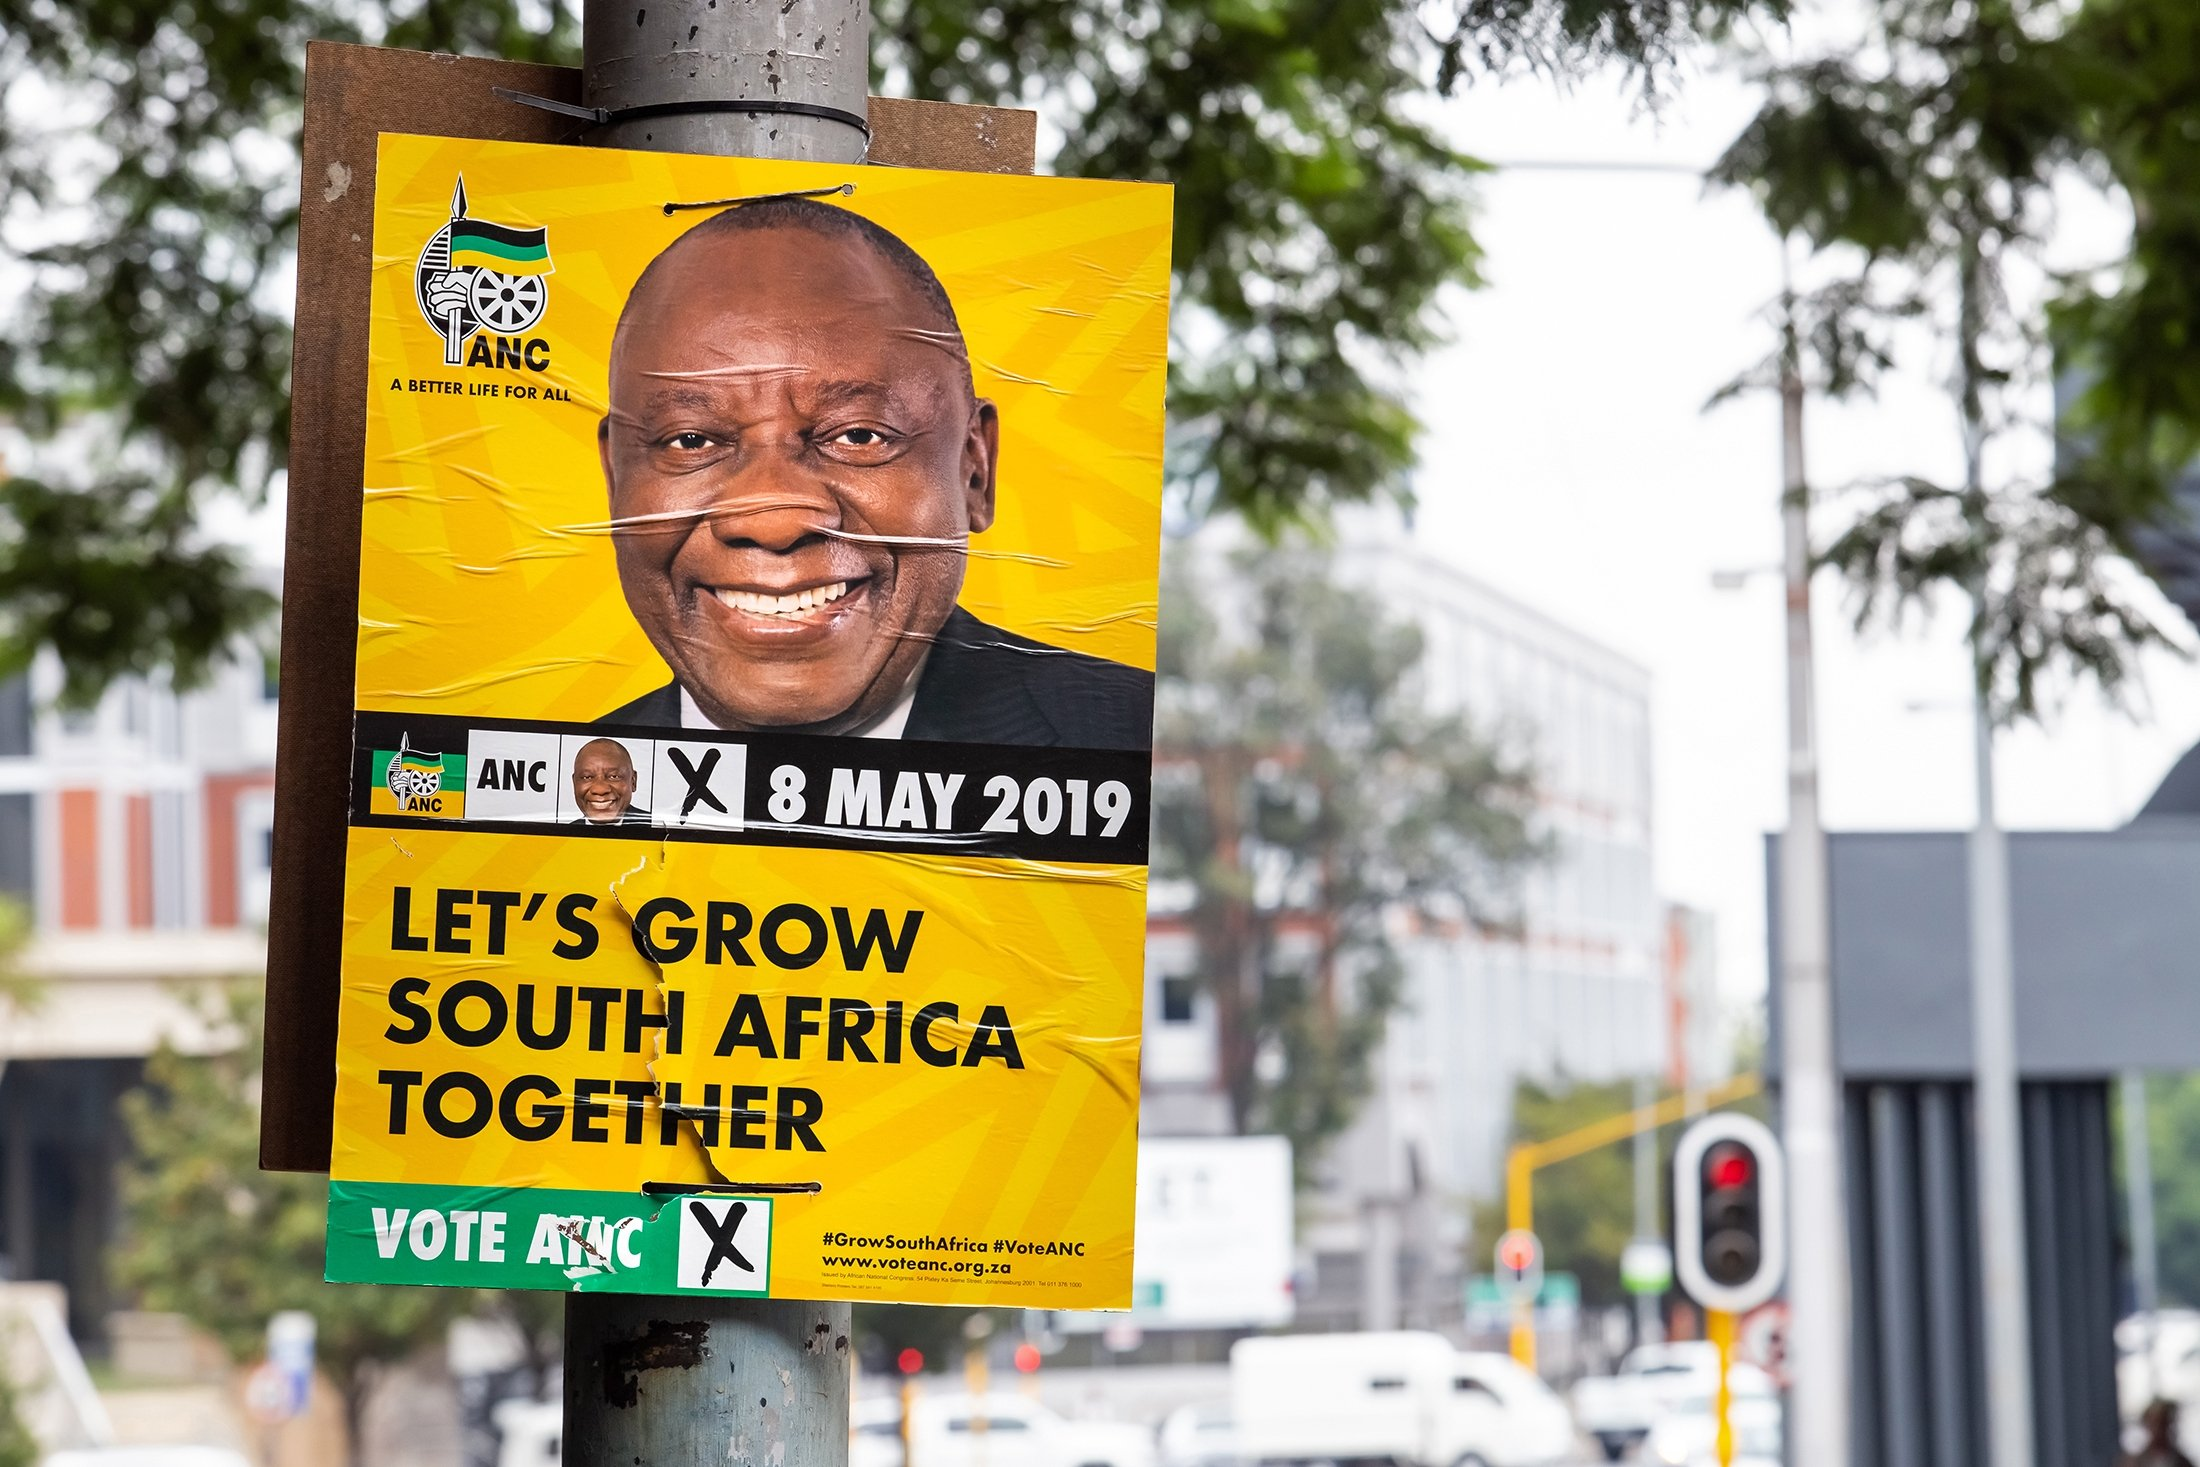 Political election posters, showing Former President of South Africa Jacob Zuma and his party African National Congress (ANC), attached to polls in the city center, Johannesburg, South Africa, March 22, 2019. (Shutterstock Photo)